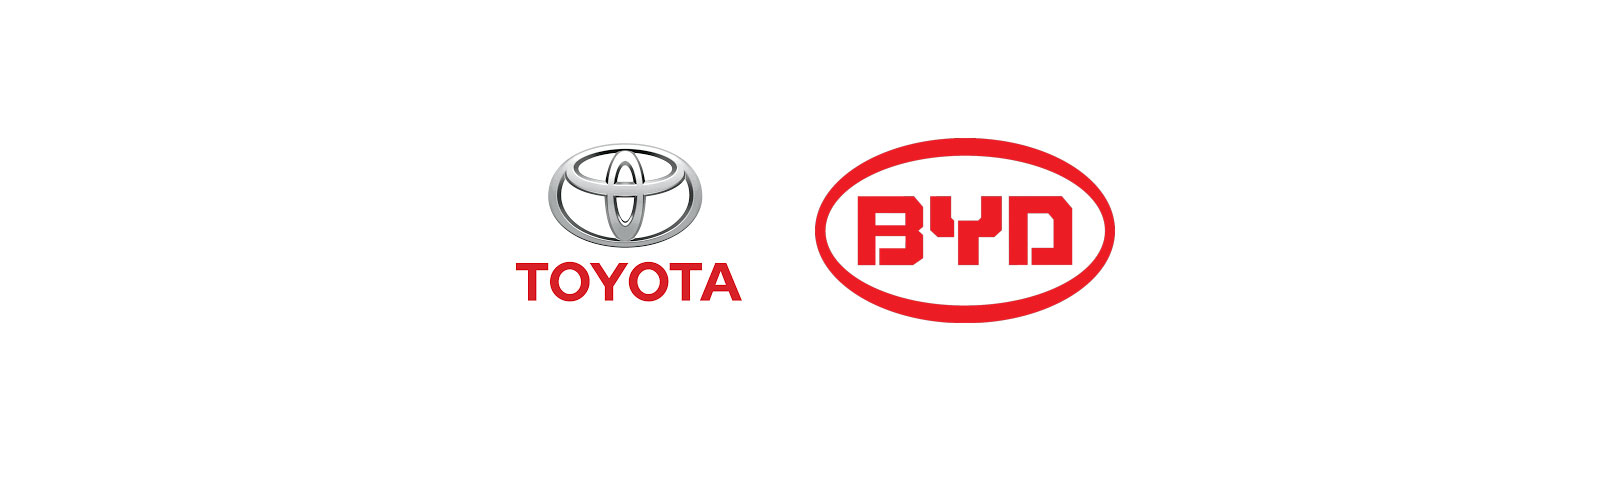 Toyota and BYD formed a joint venture for R&D on BEVs